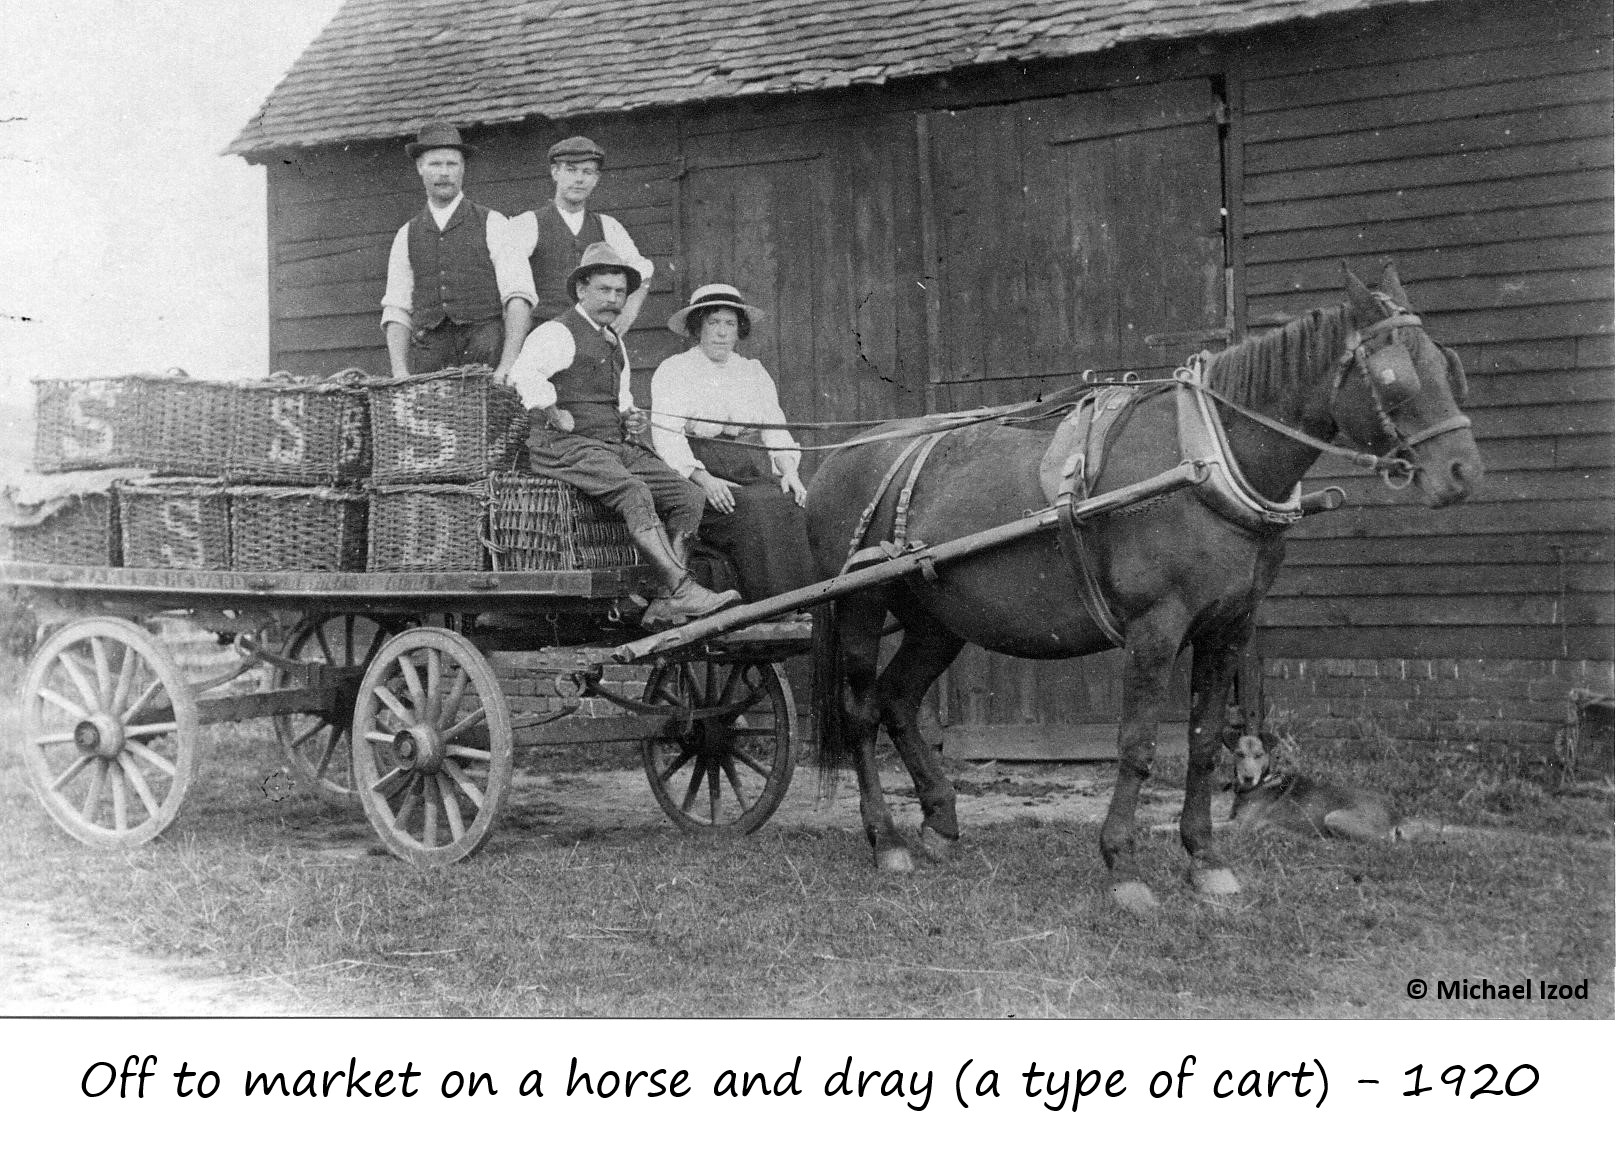 Off to market on horse and dray